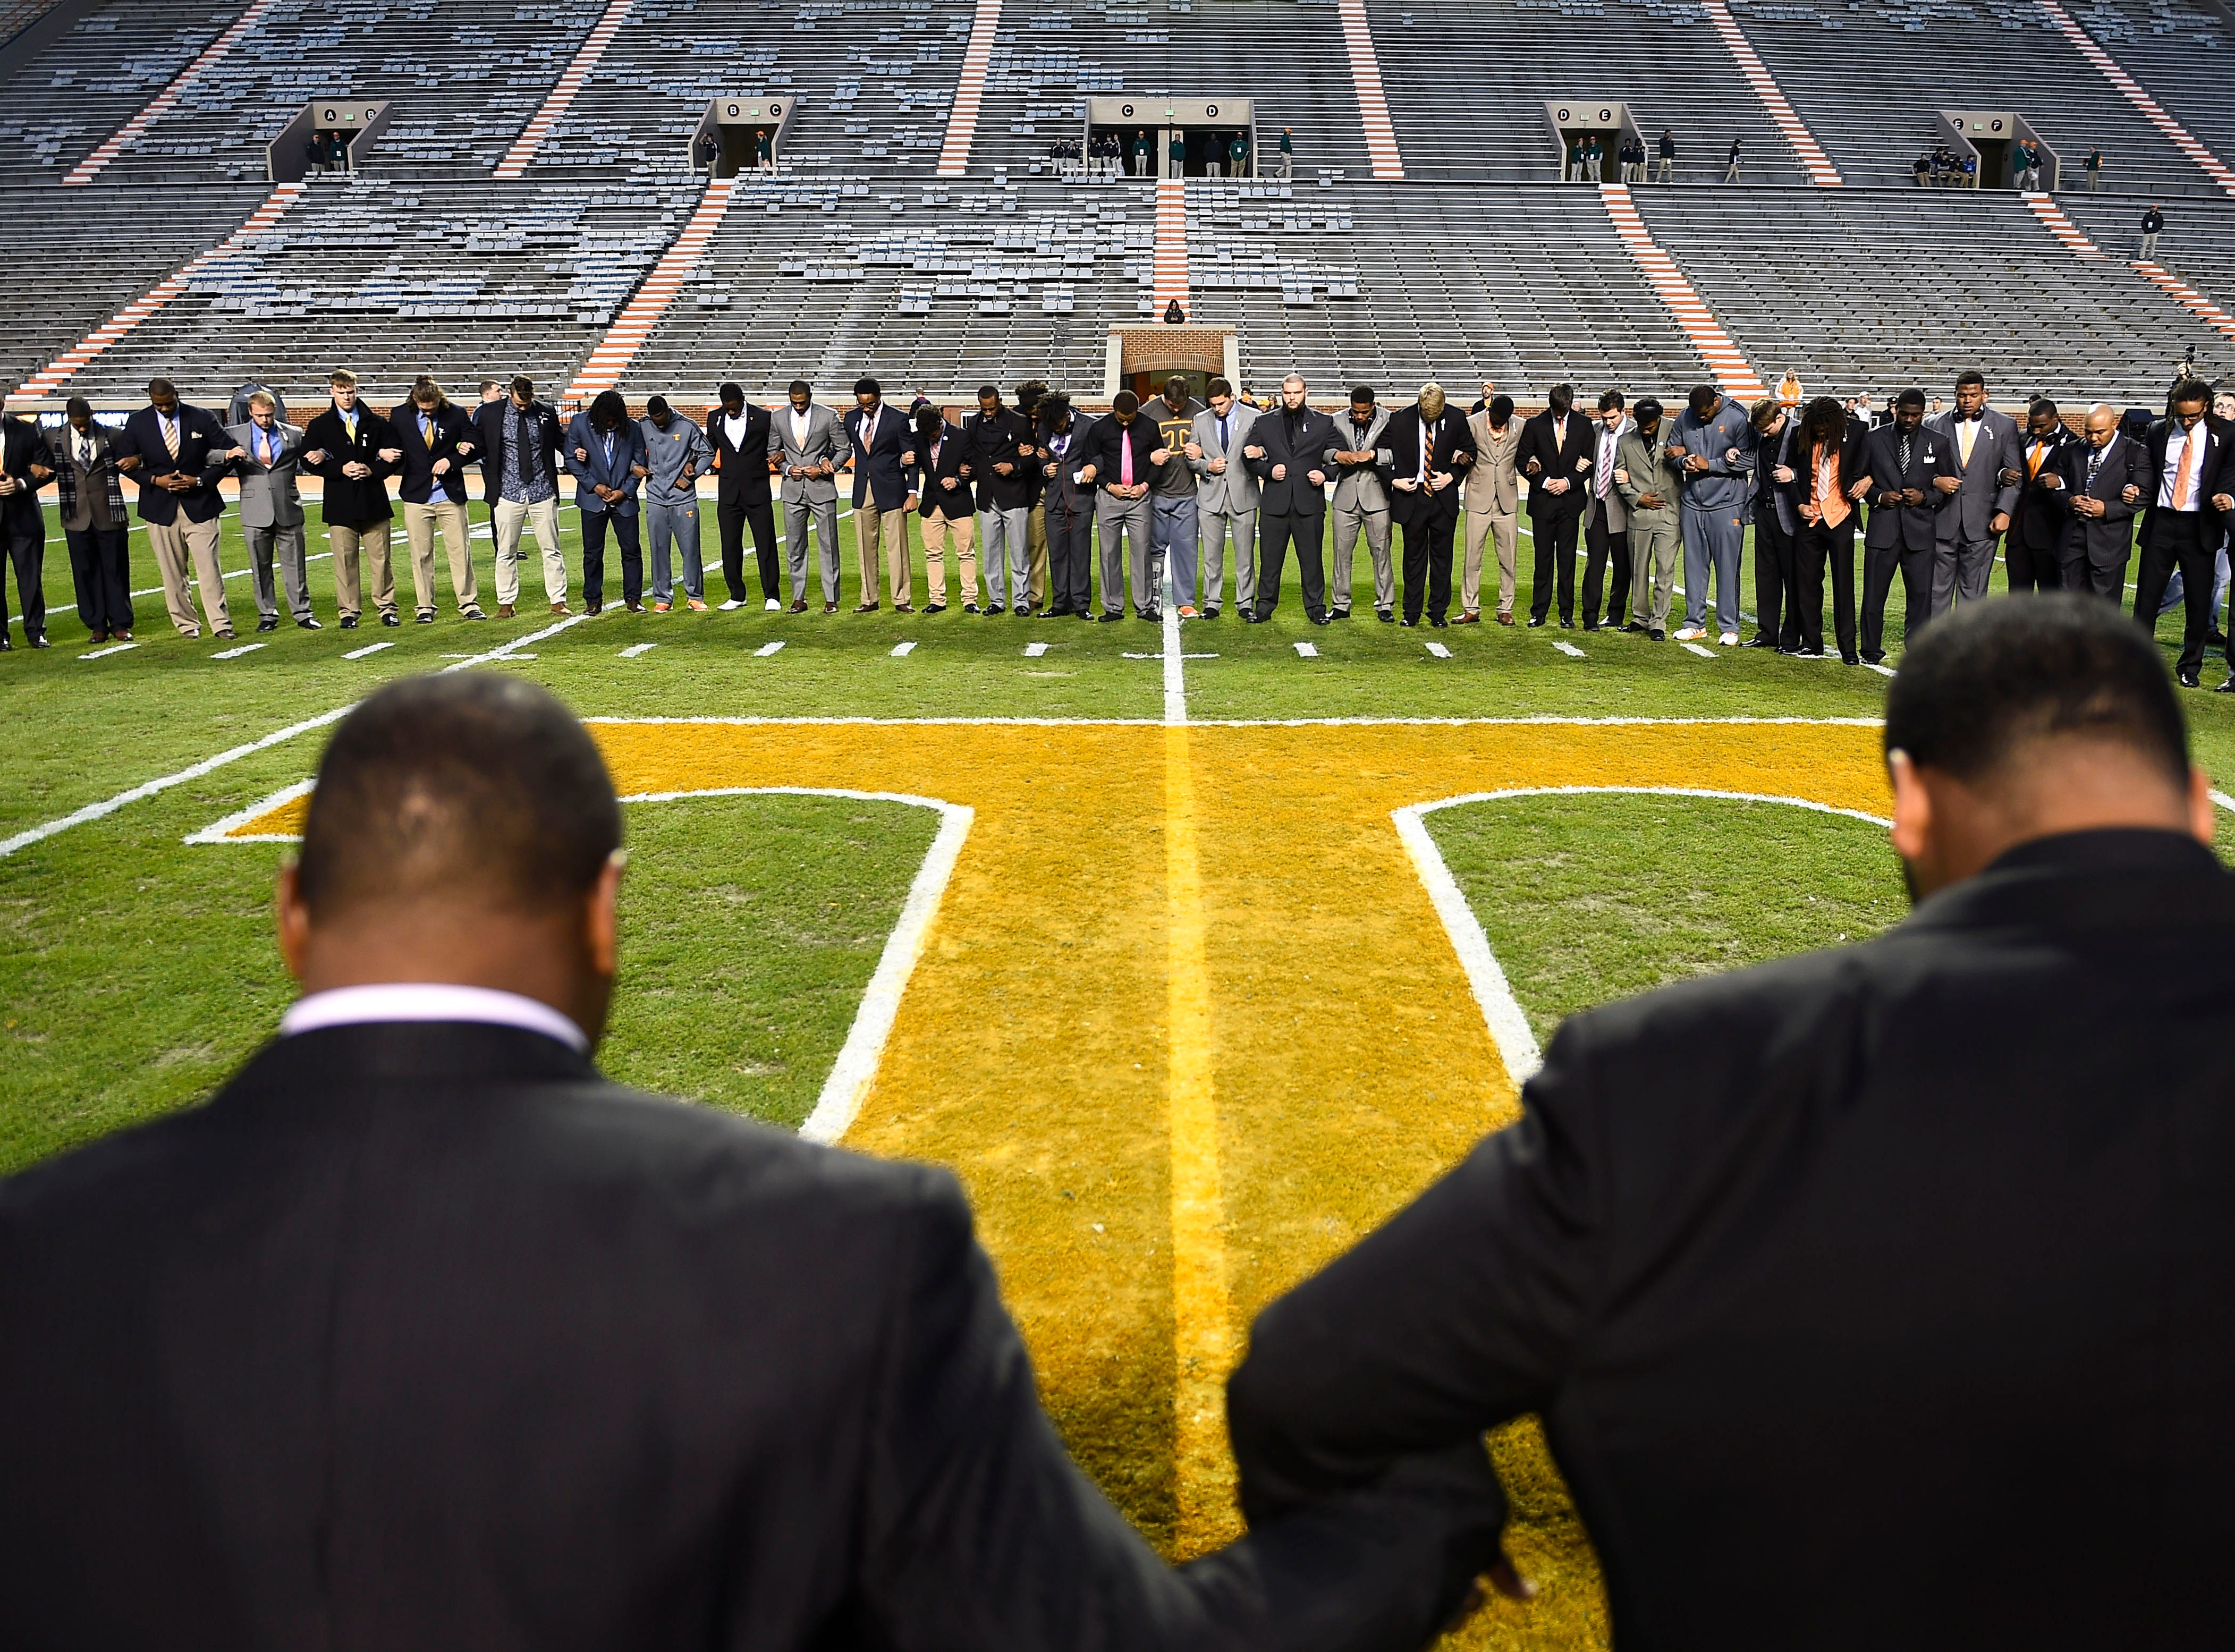 The Tennessee football team gathers for a prayer before the game against the Missouri Tigers Saturday, Nov. 22, 2014 in Knoxville, TN.